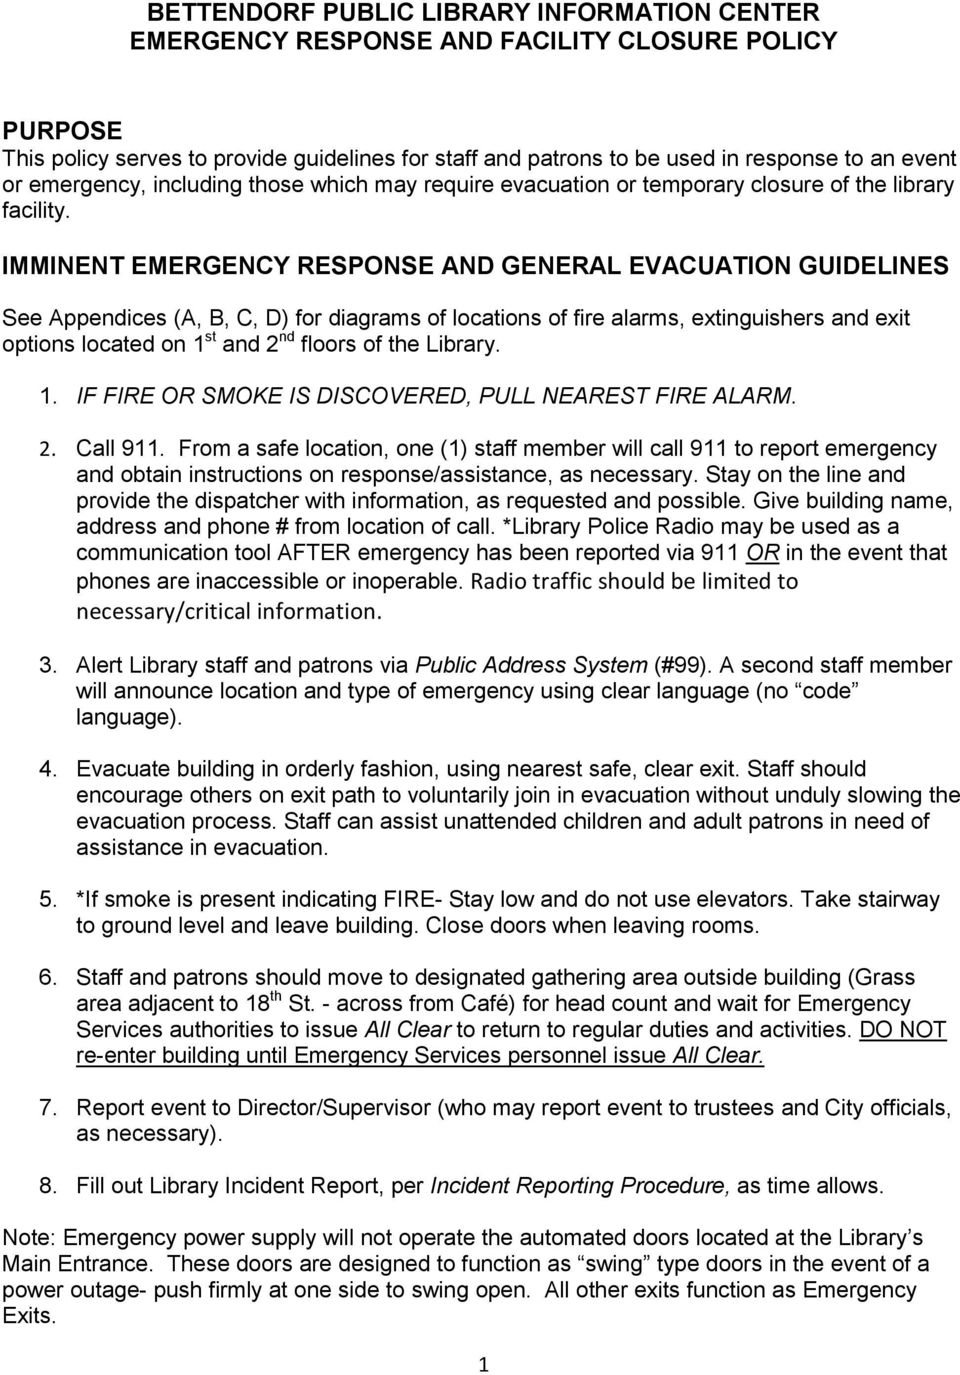 IMMINENT EMERGENCY RESPONSE AND GENERAL EVACUATION GUIDELINES See Appendices (A, B, C, D) for diagrams of locations of fire alarms, extinguishers and exit options located on 1 st and 2 nd floors of